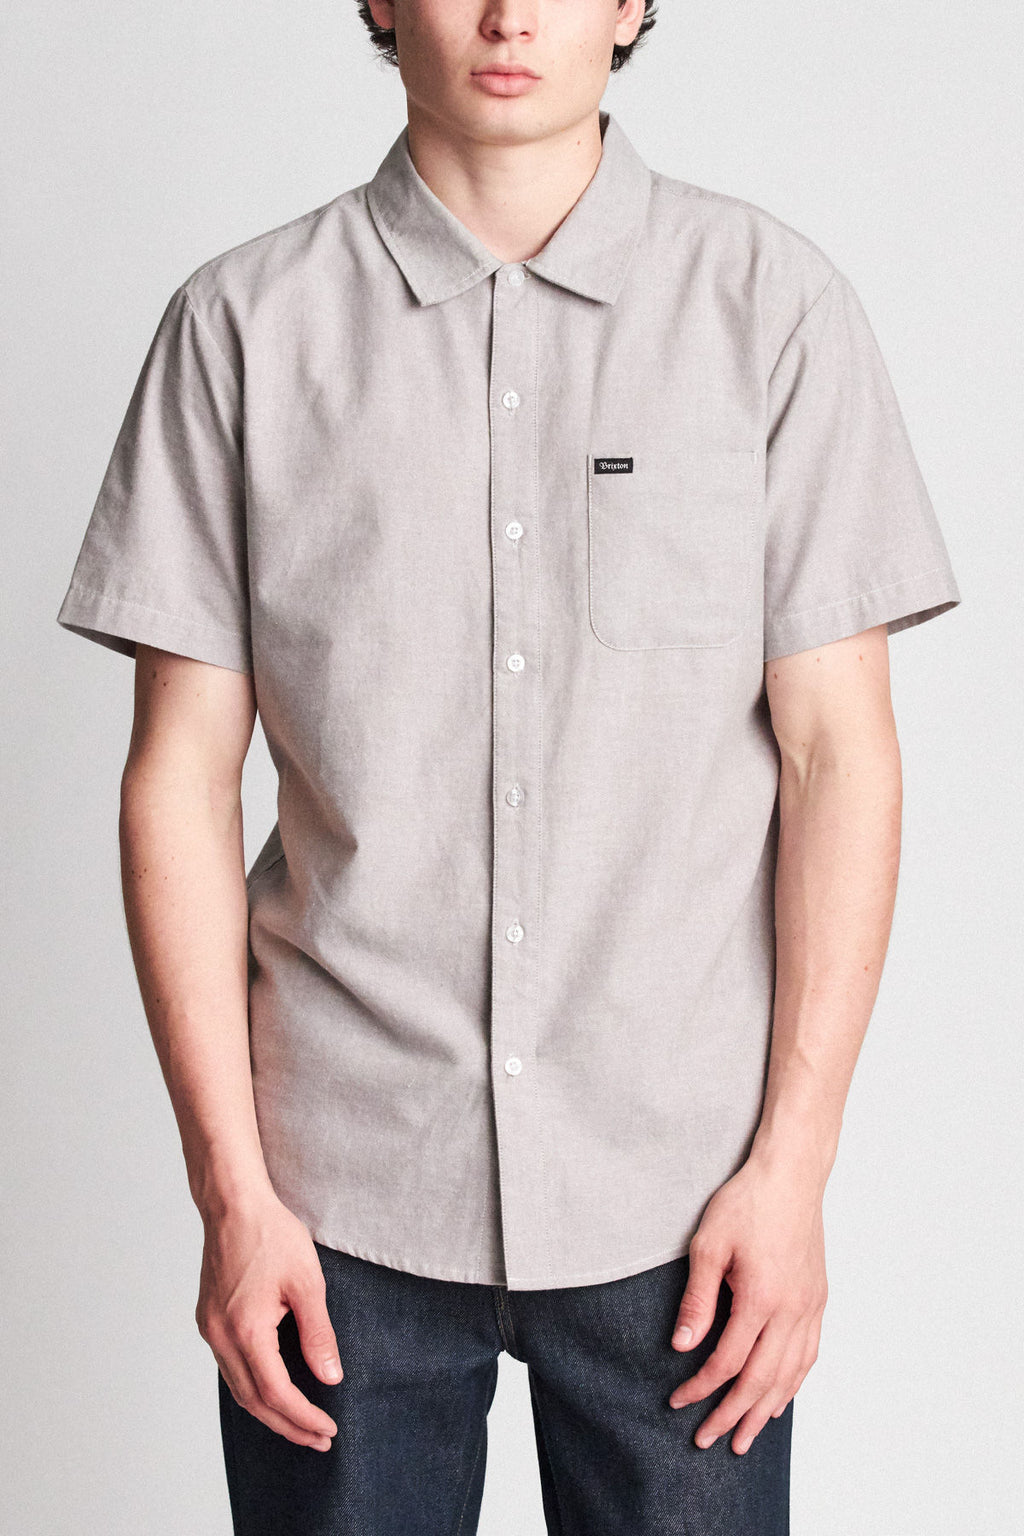 Brixton - Charter Oxford Short Sleeve Shirt - Grey - Guys